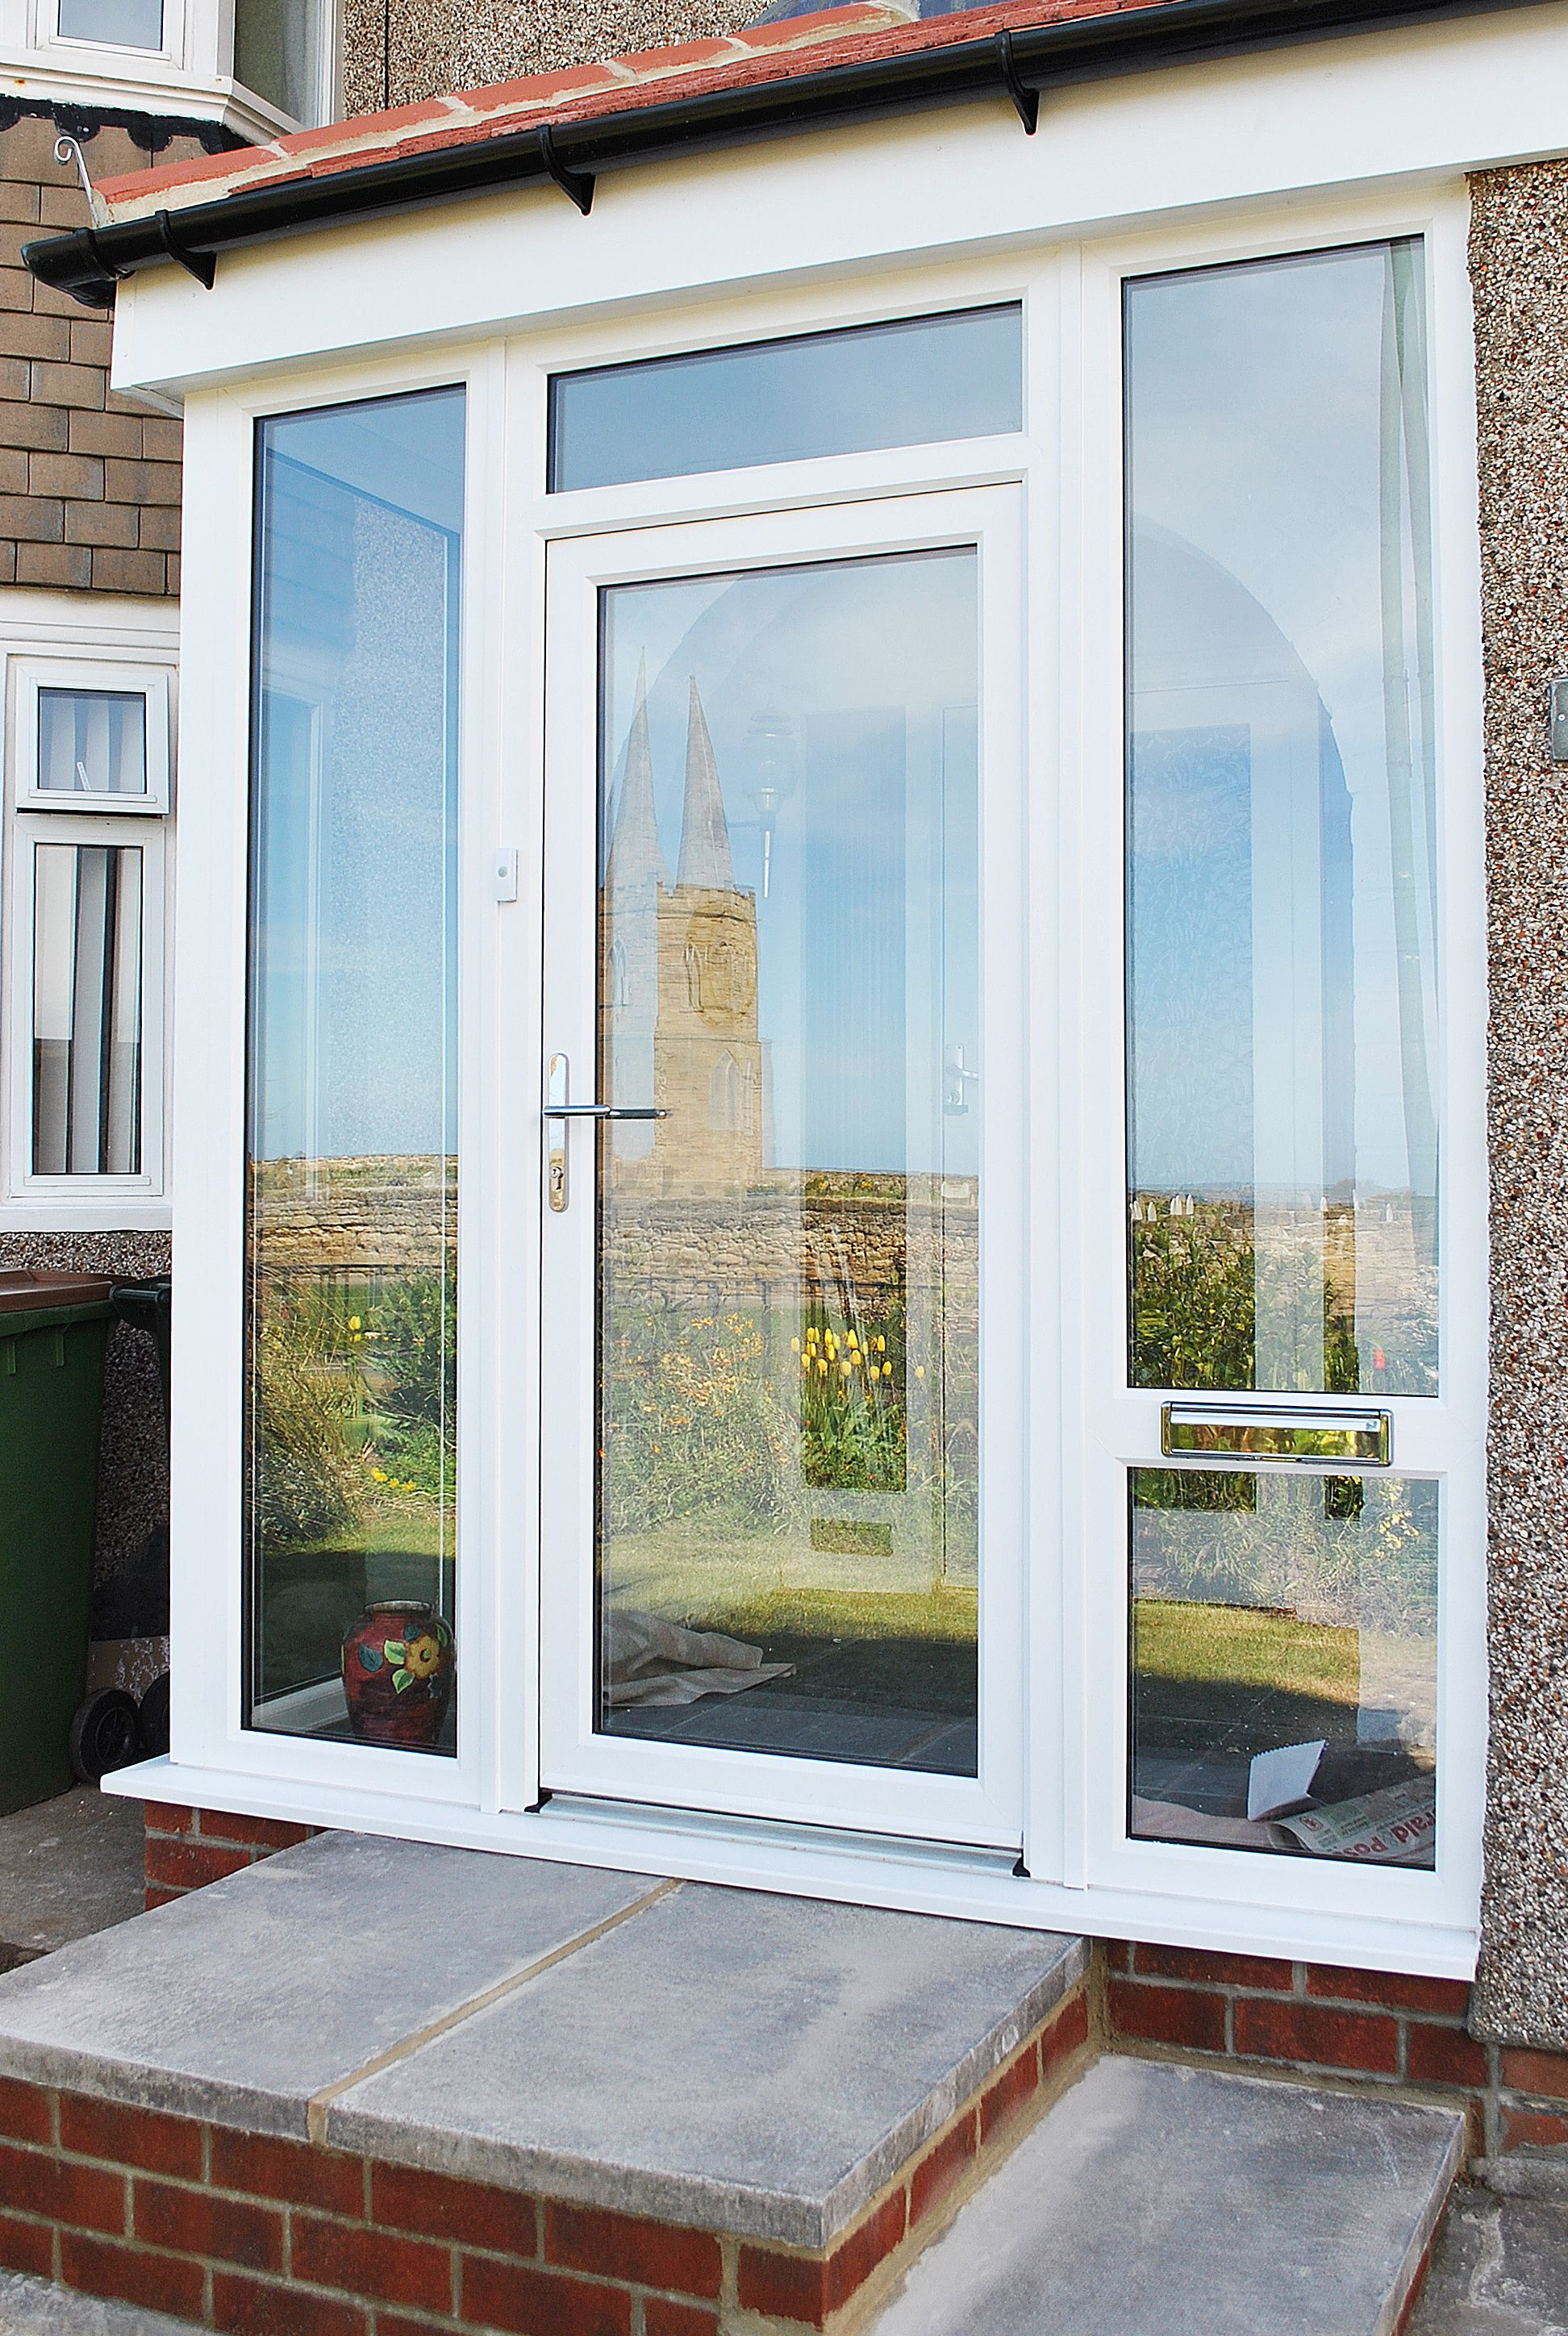 Fenesta upvc doors windows glass flooring - Bright And Simple Porch Renovation In Rehau White Upvc Profile With Top Light